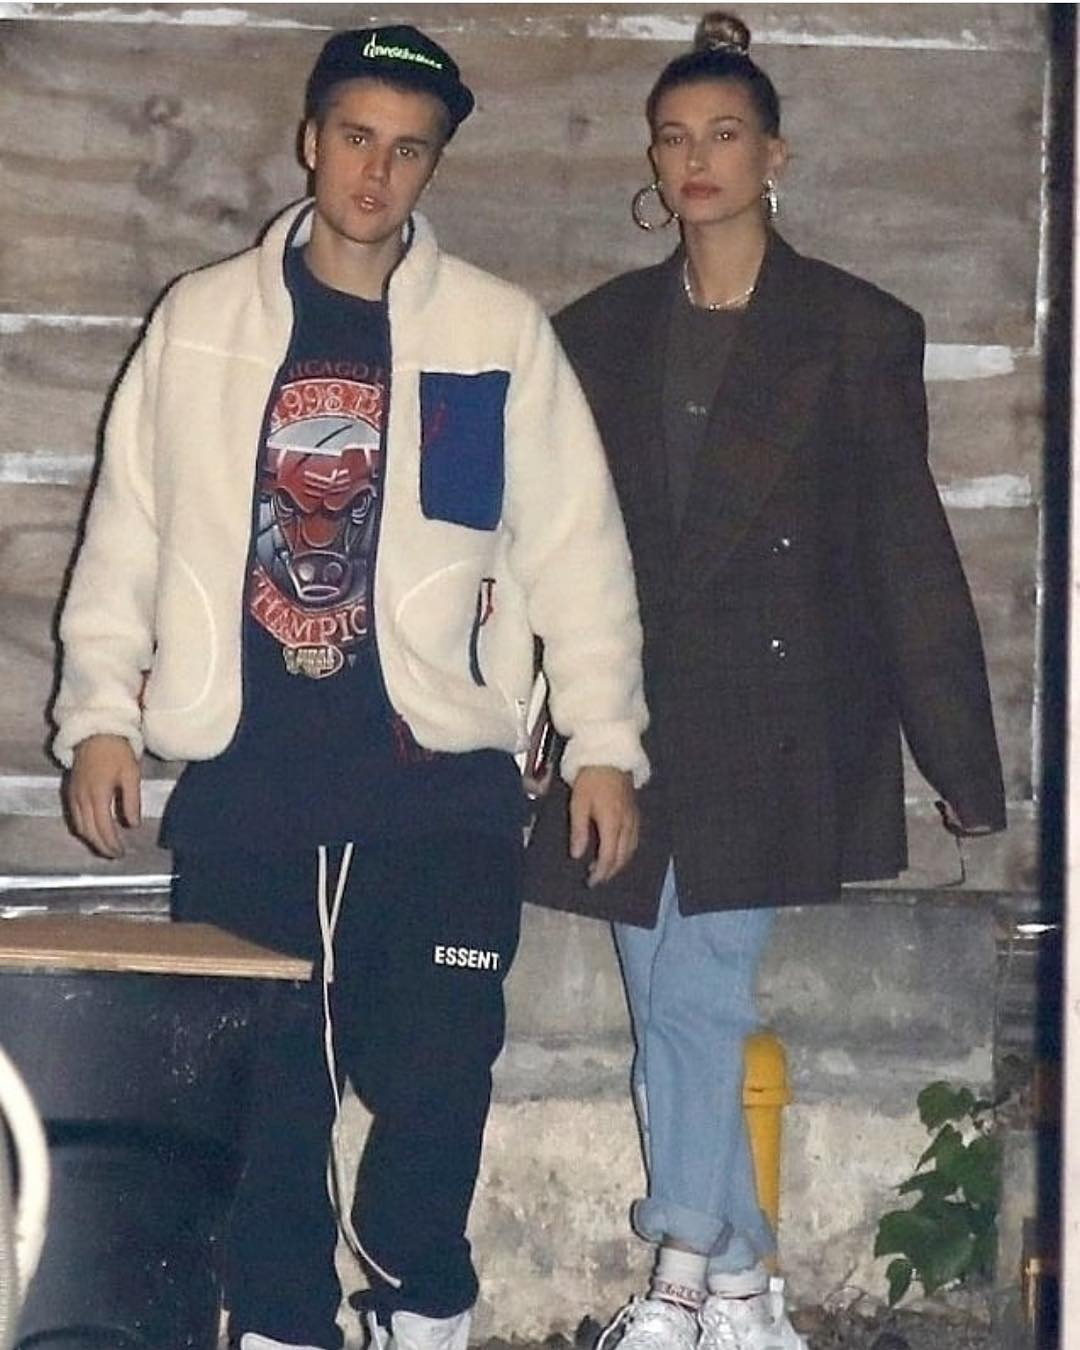 SPOTTED: Justin & Hailey Bieber Arriving at the Saban Theatre, Los Angeles